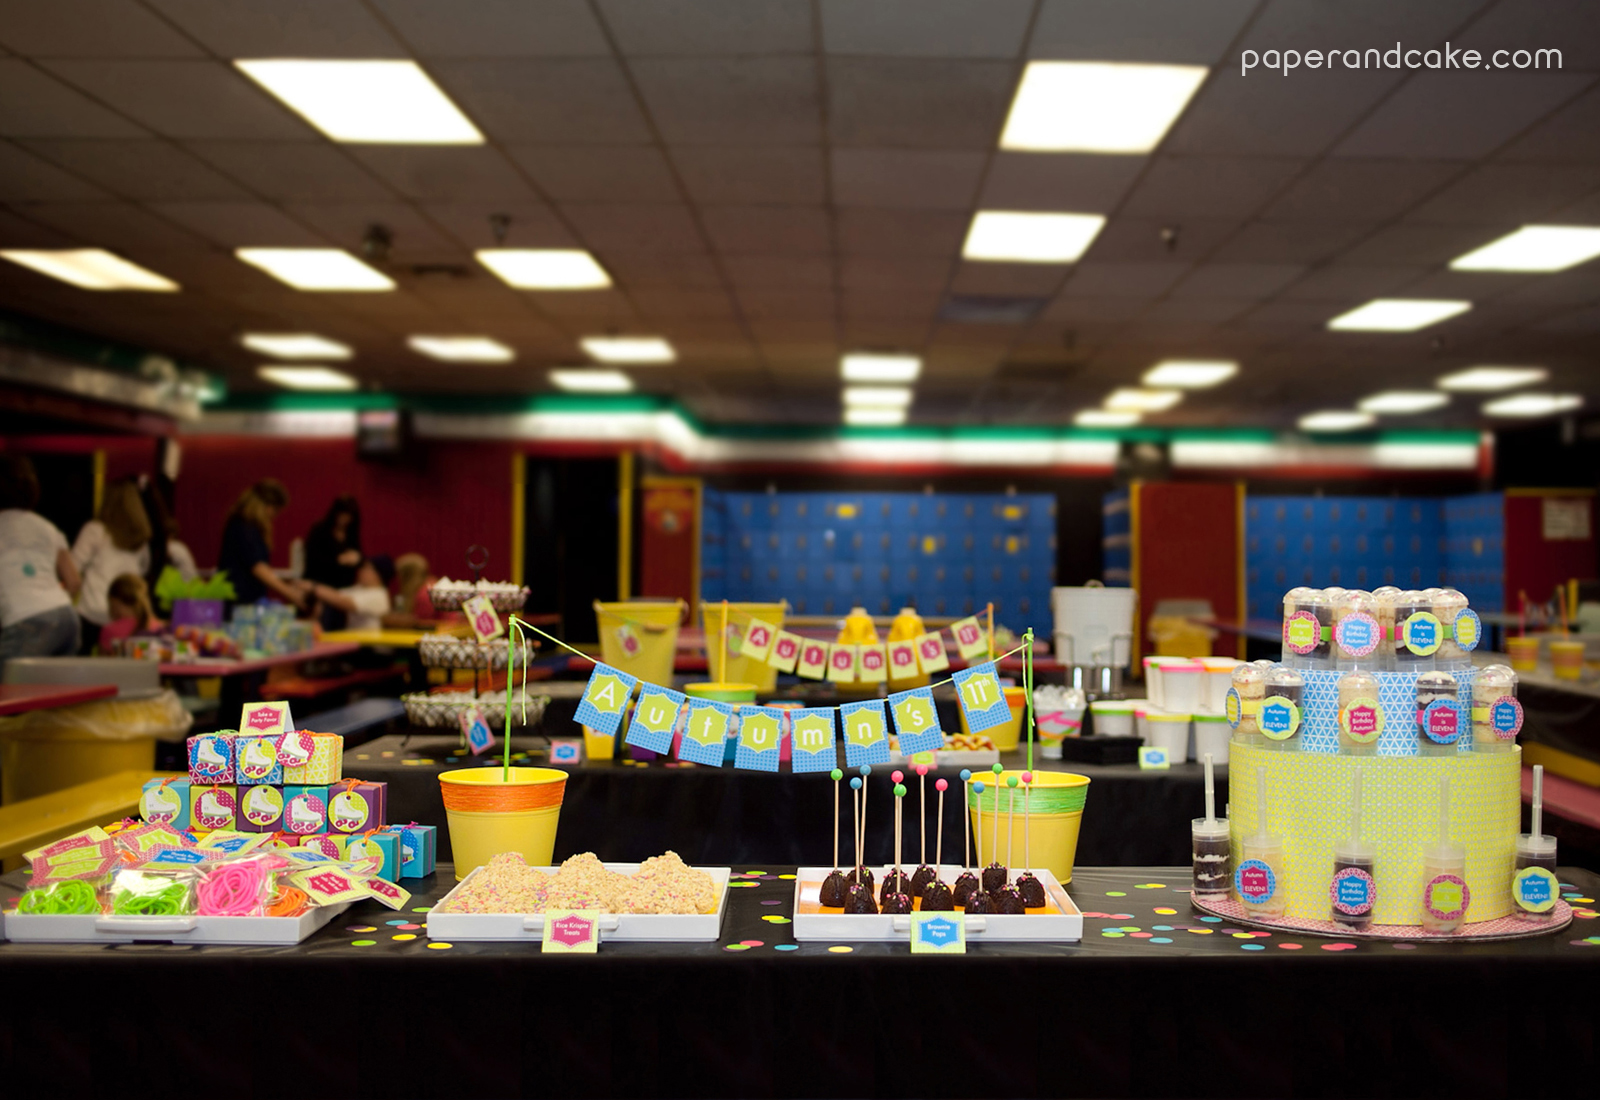 Neon Roller Skate Party Real Life Party Paper And Cake